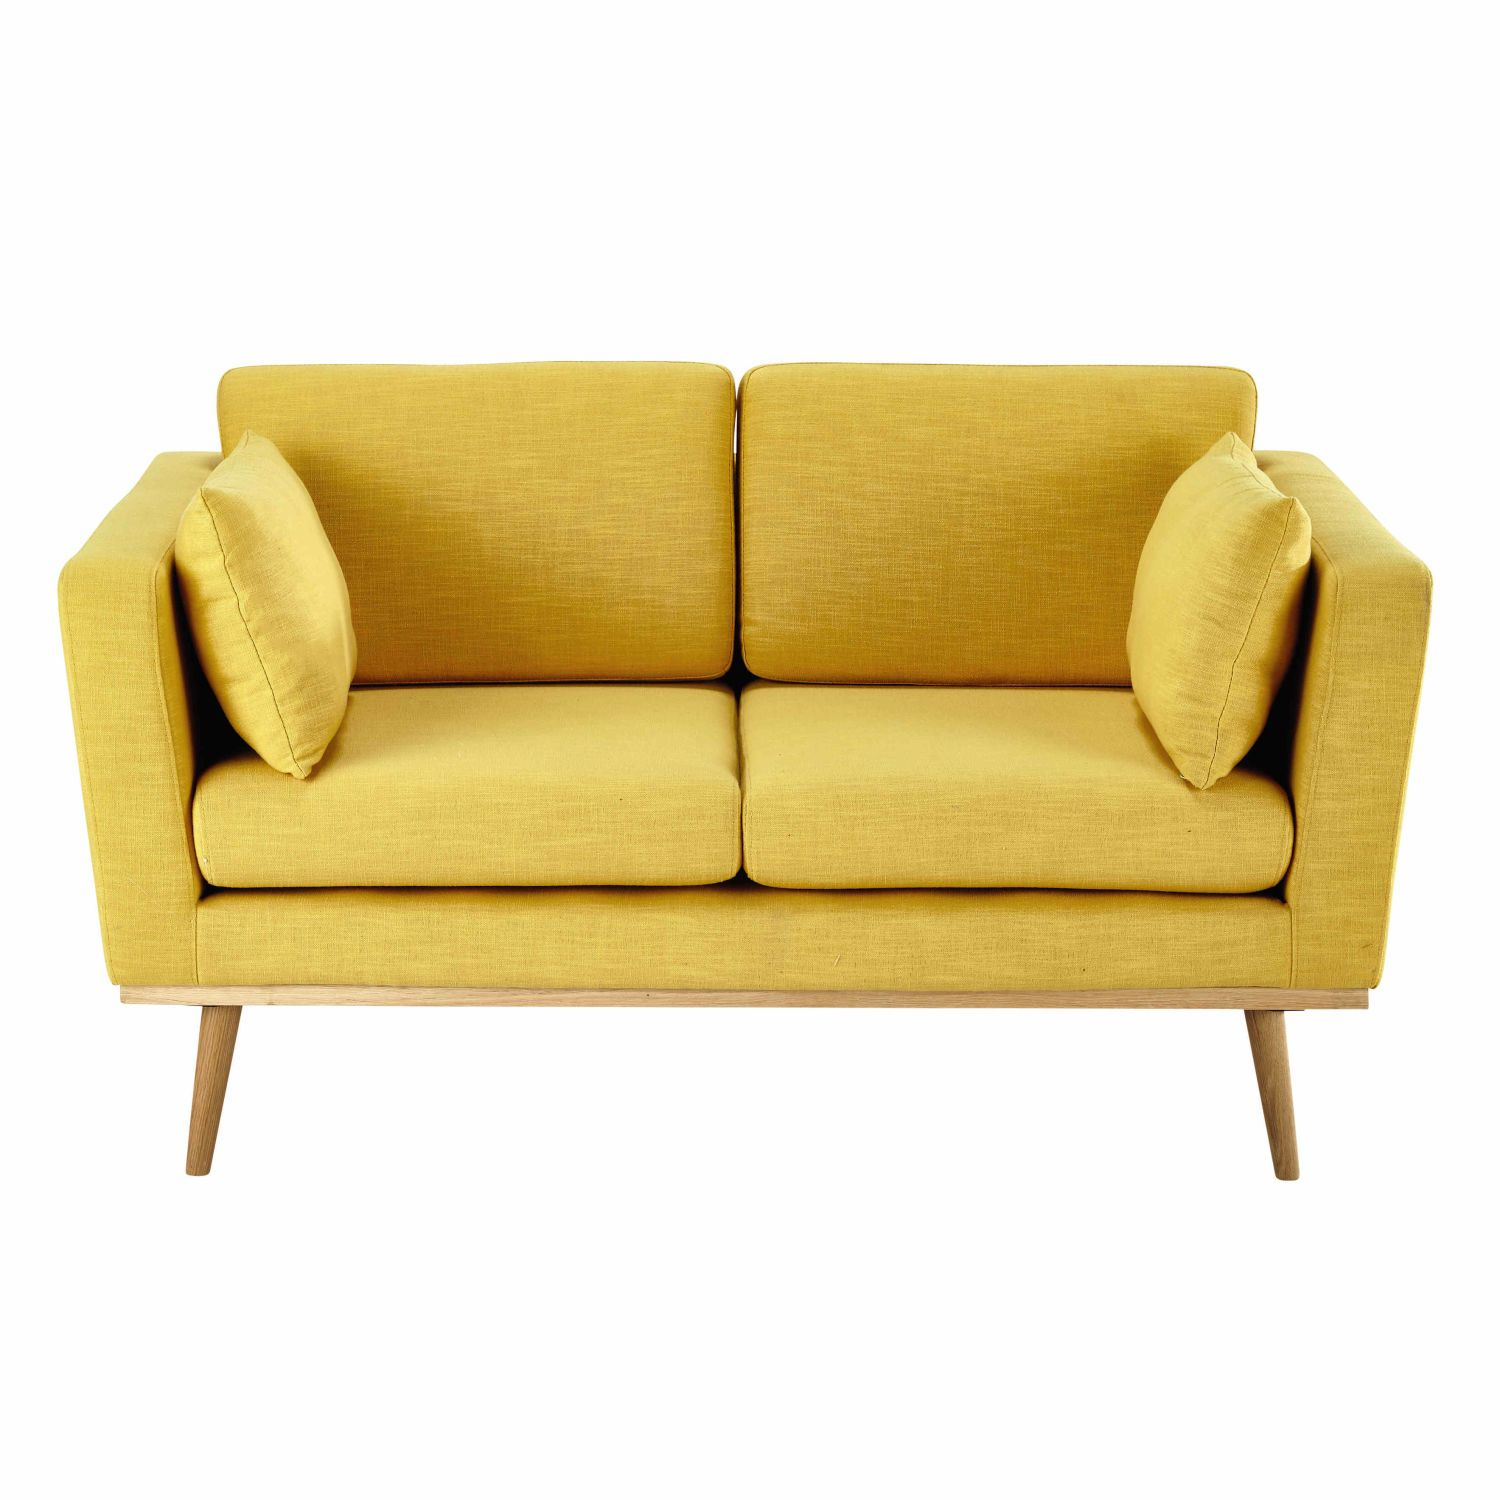 Fixed Sofas 2 Seater Sofa Fabric Sofa Kitchen Sofa